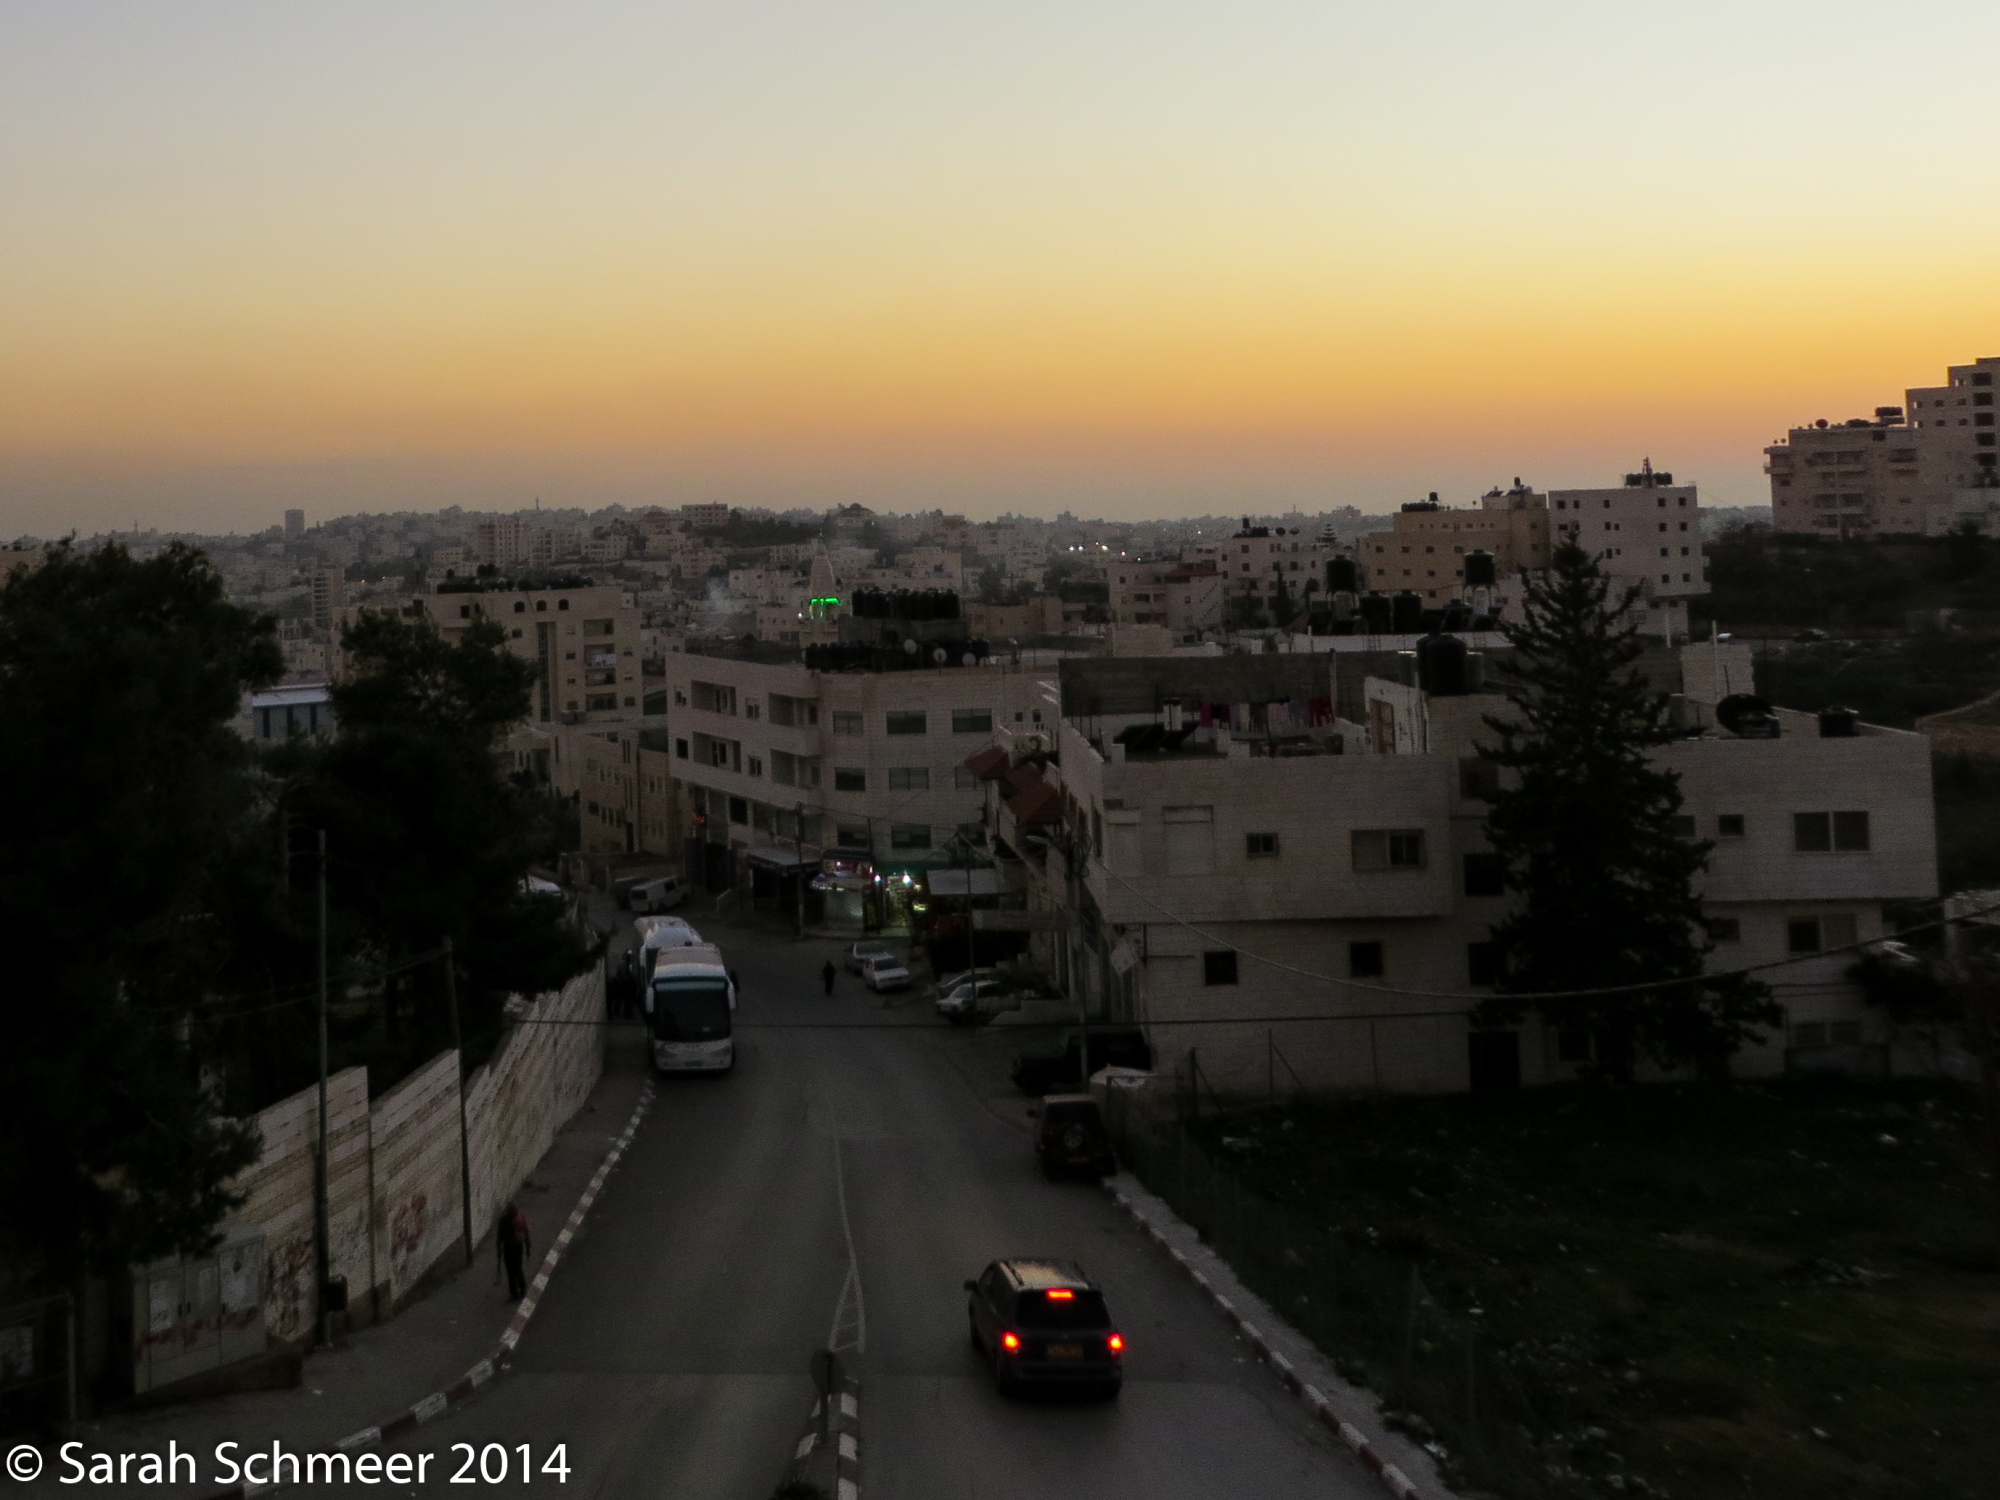 Sunset over Hebron, West Bank